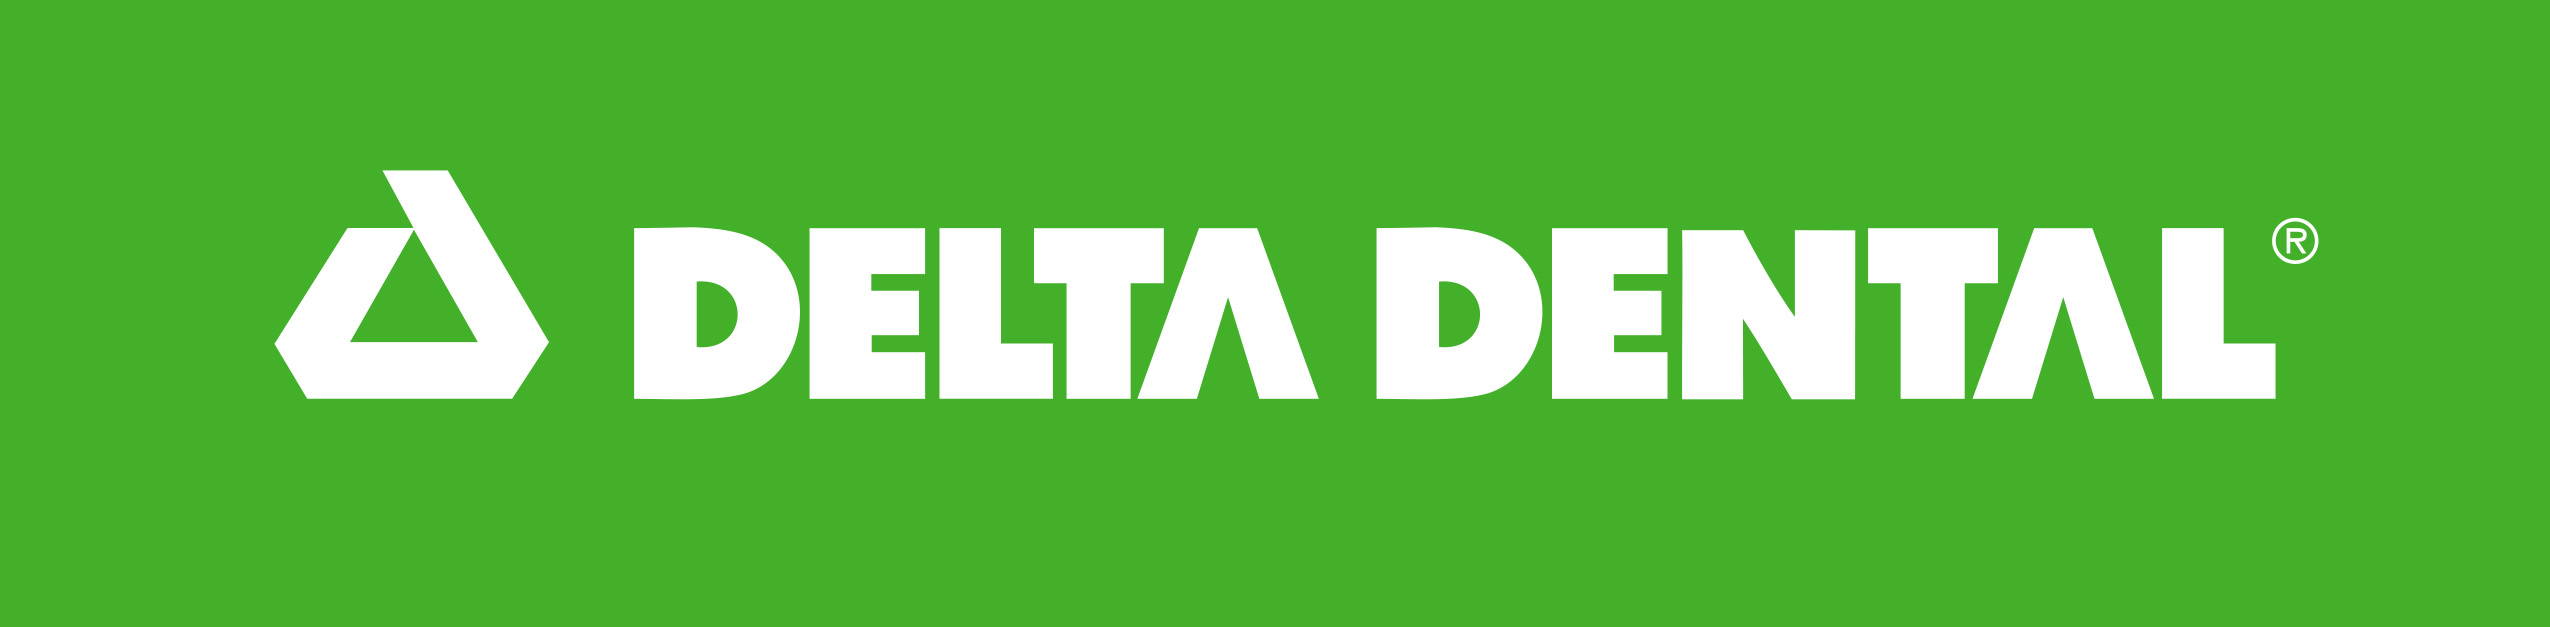 Delta Dental Logo green